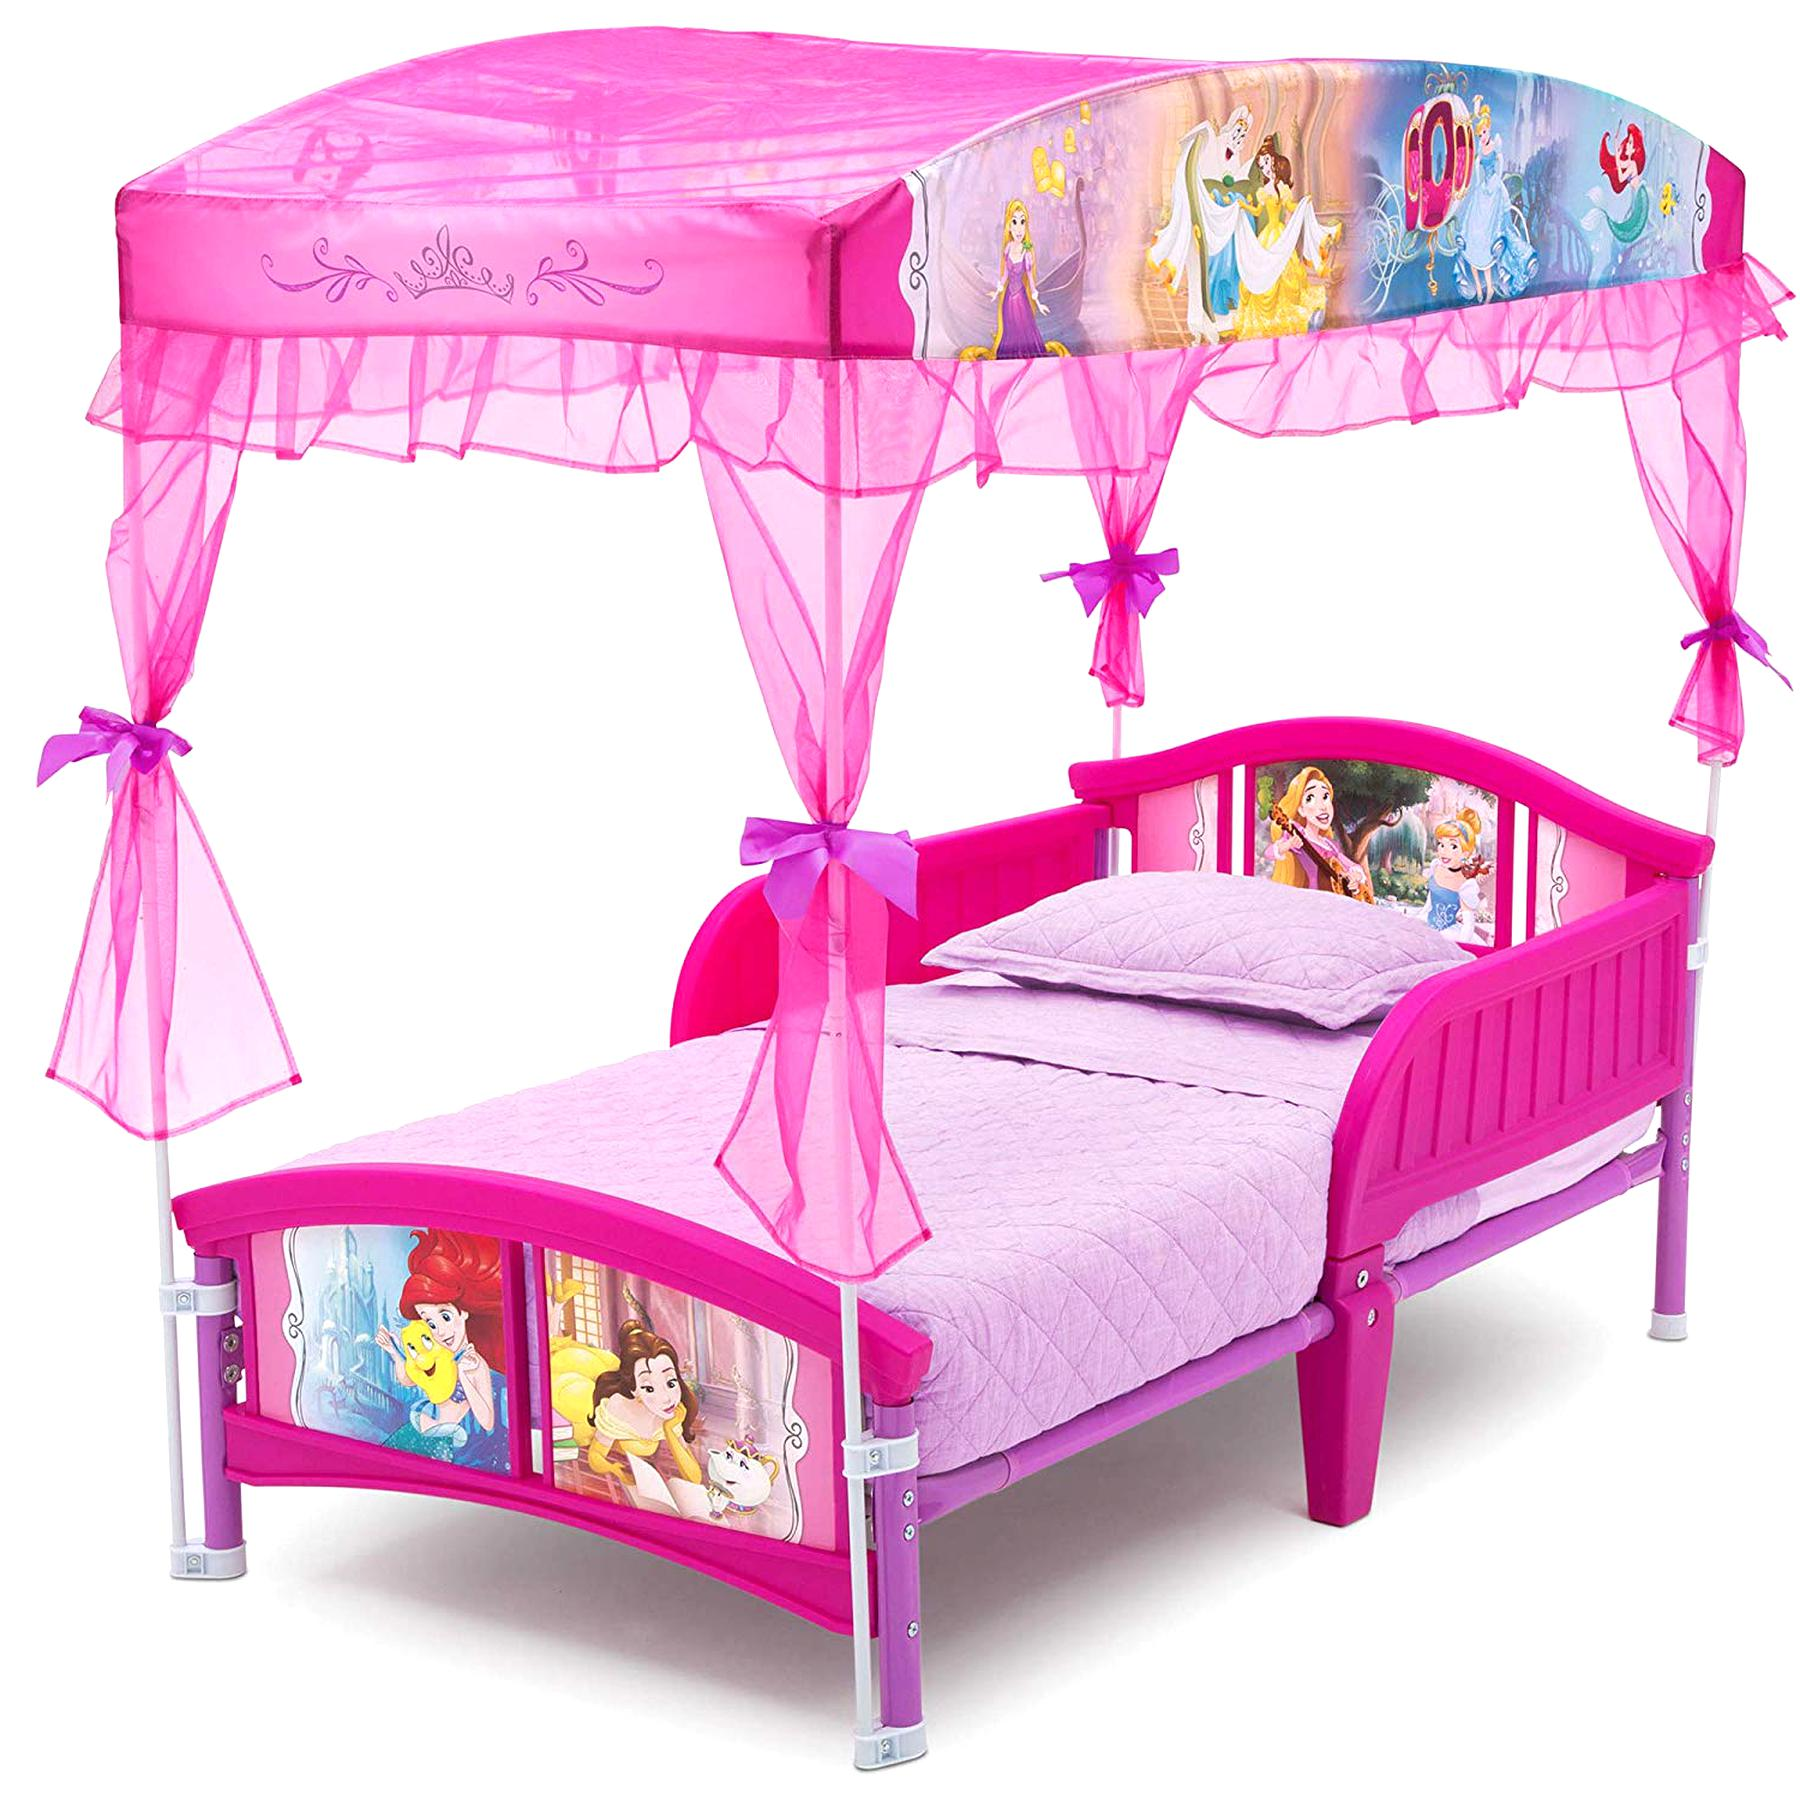 Princess Bed For Sale In Uk 89 Used Princess Beds